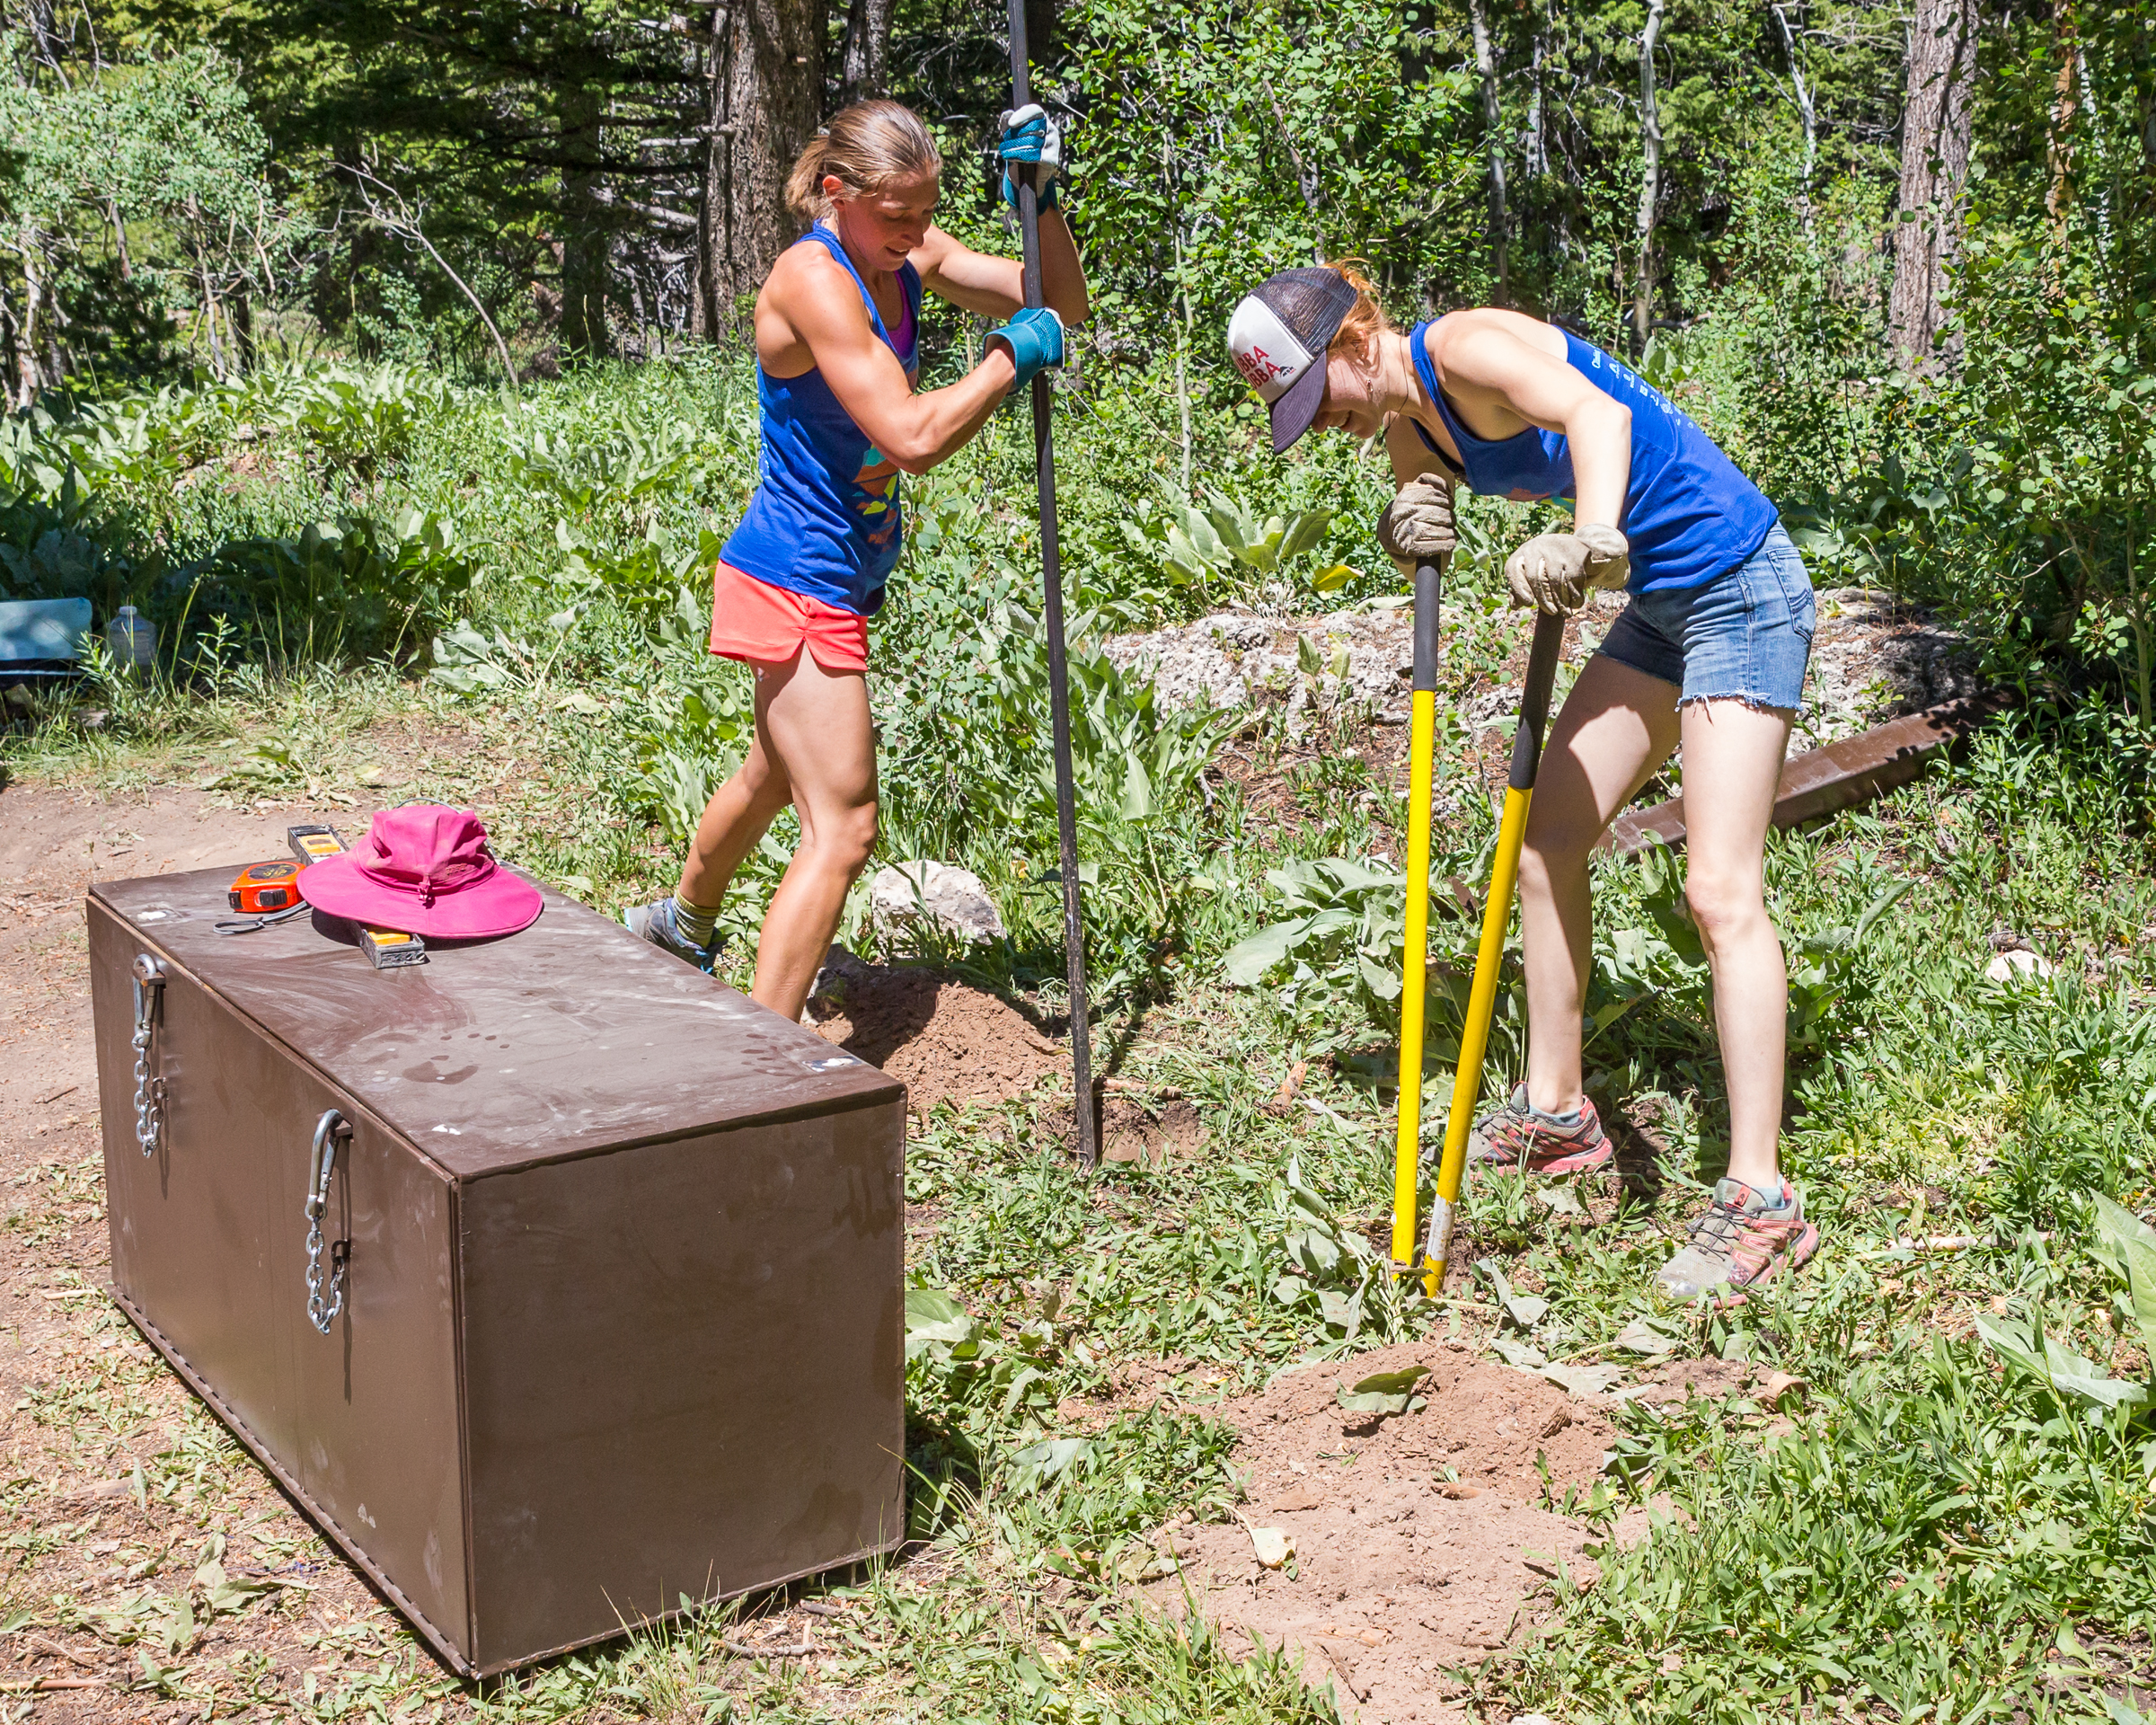 photo: Nathan R. Johnson. Volunteers installing Bear Boxes at the Wild Iris campground.